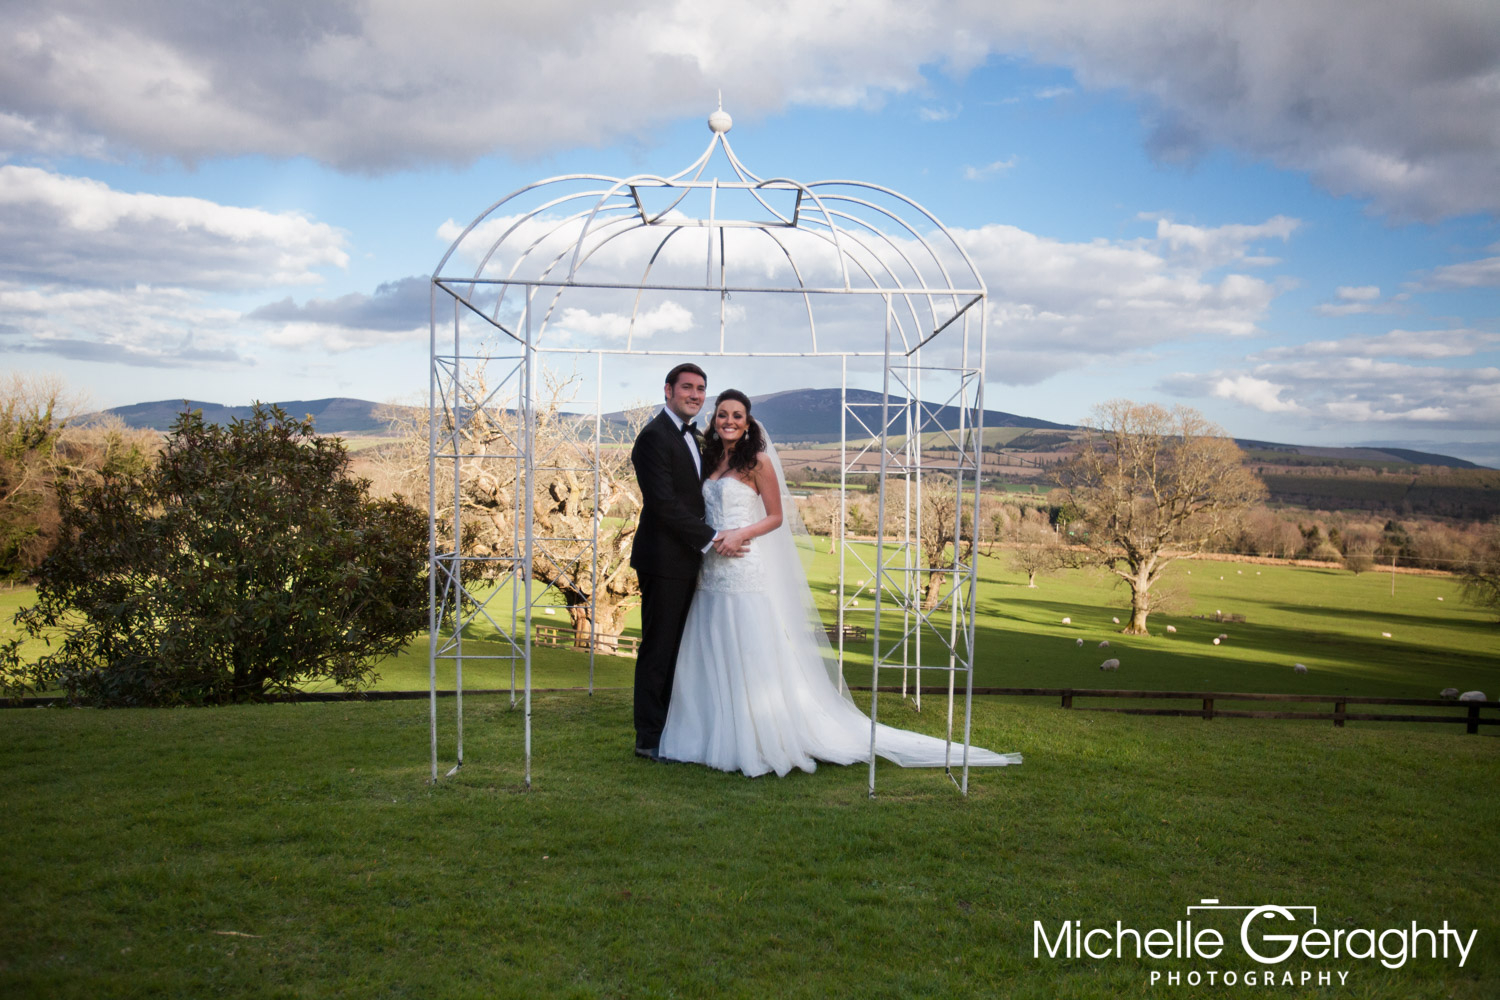 1456-Michelle Geraghty Photography_Mary & Connal-IMG_4208.jpg